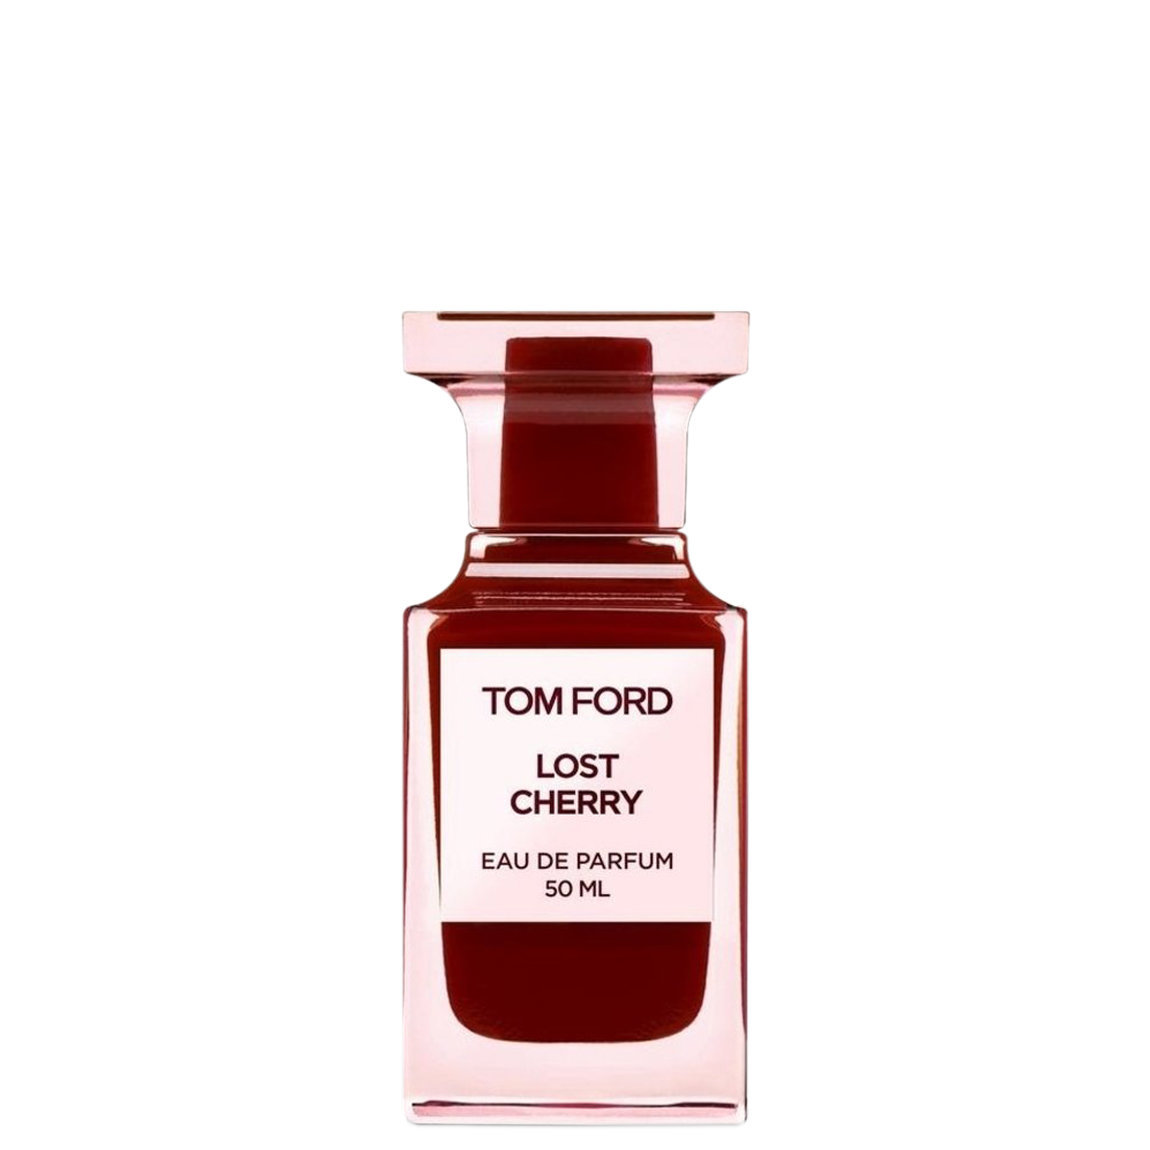 TOM FORD Lost Cherry 50 ml alternative view 1 - product swatch.